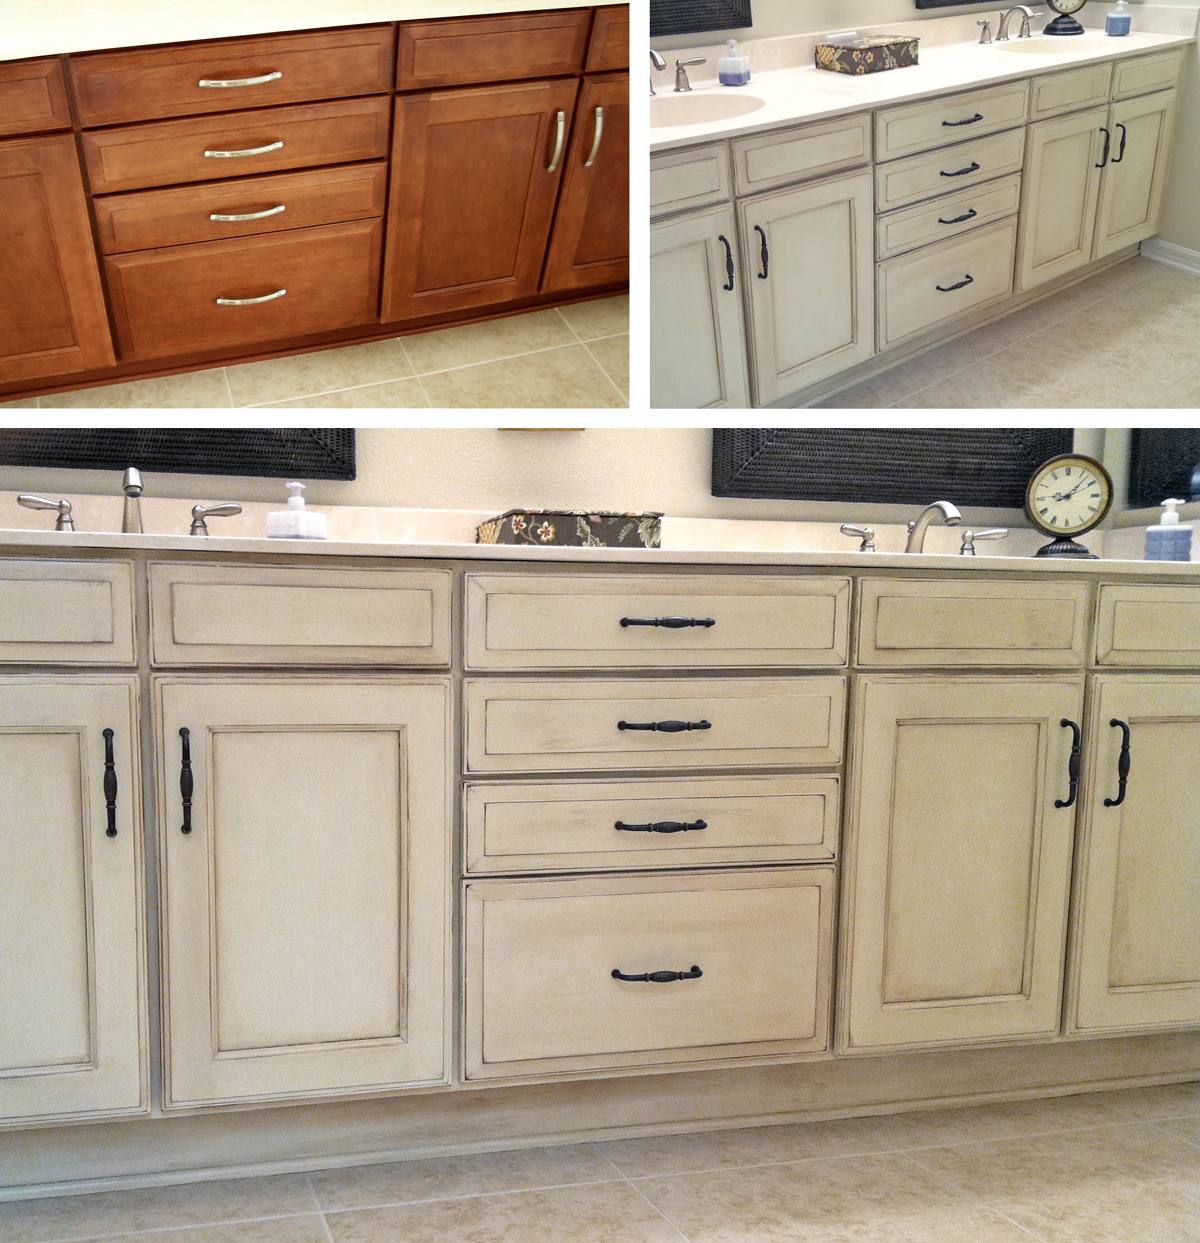 New Annie Sloan Chalk Paint Cabinets